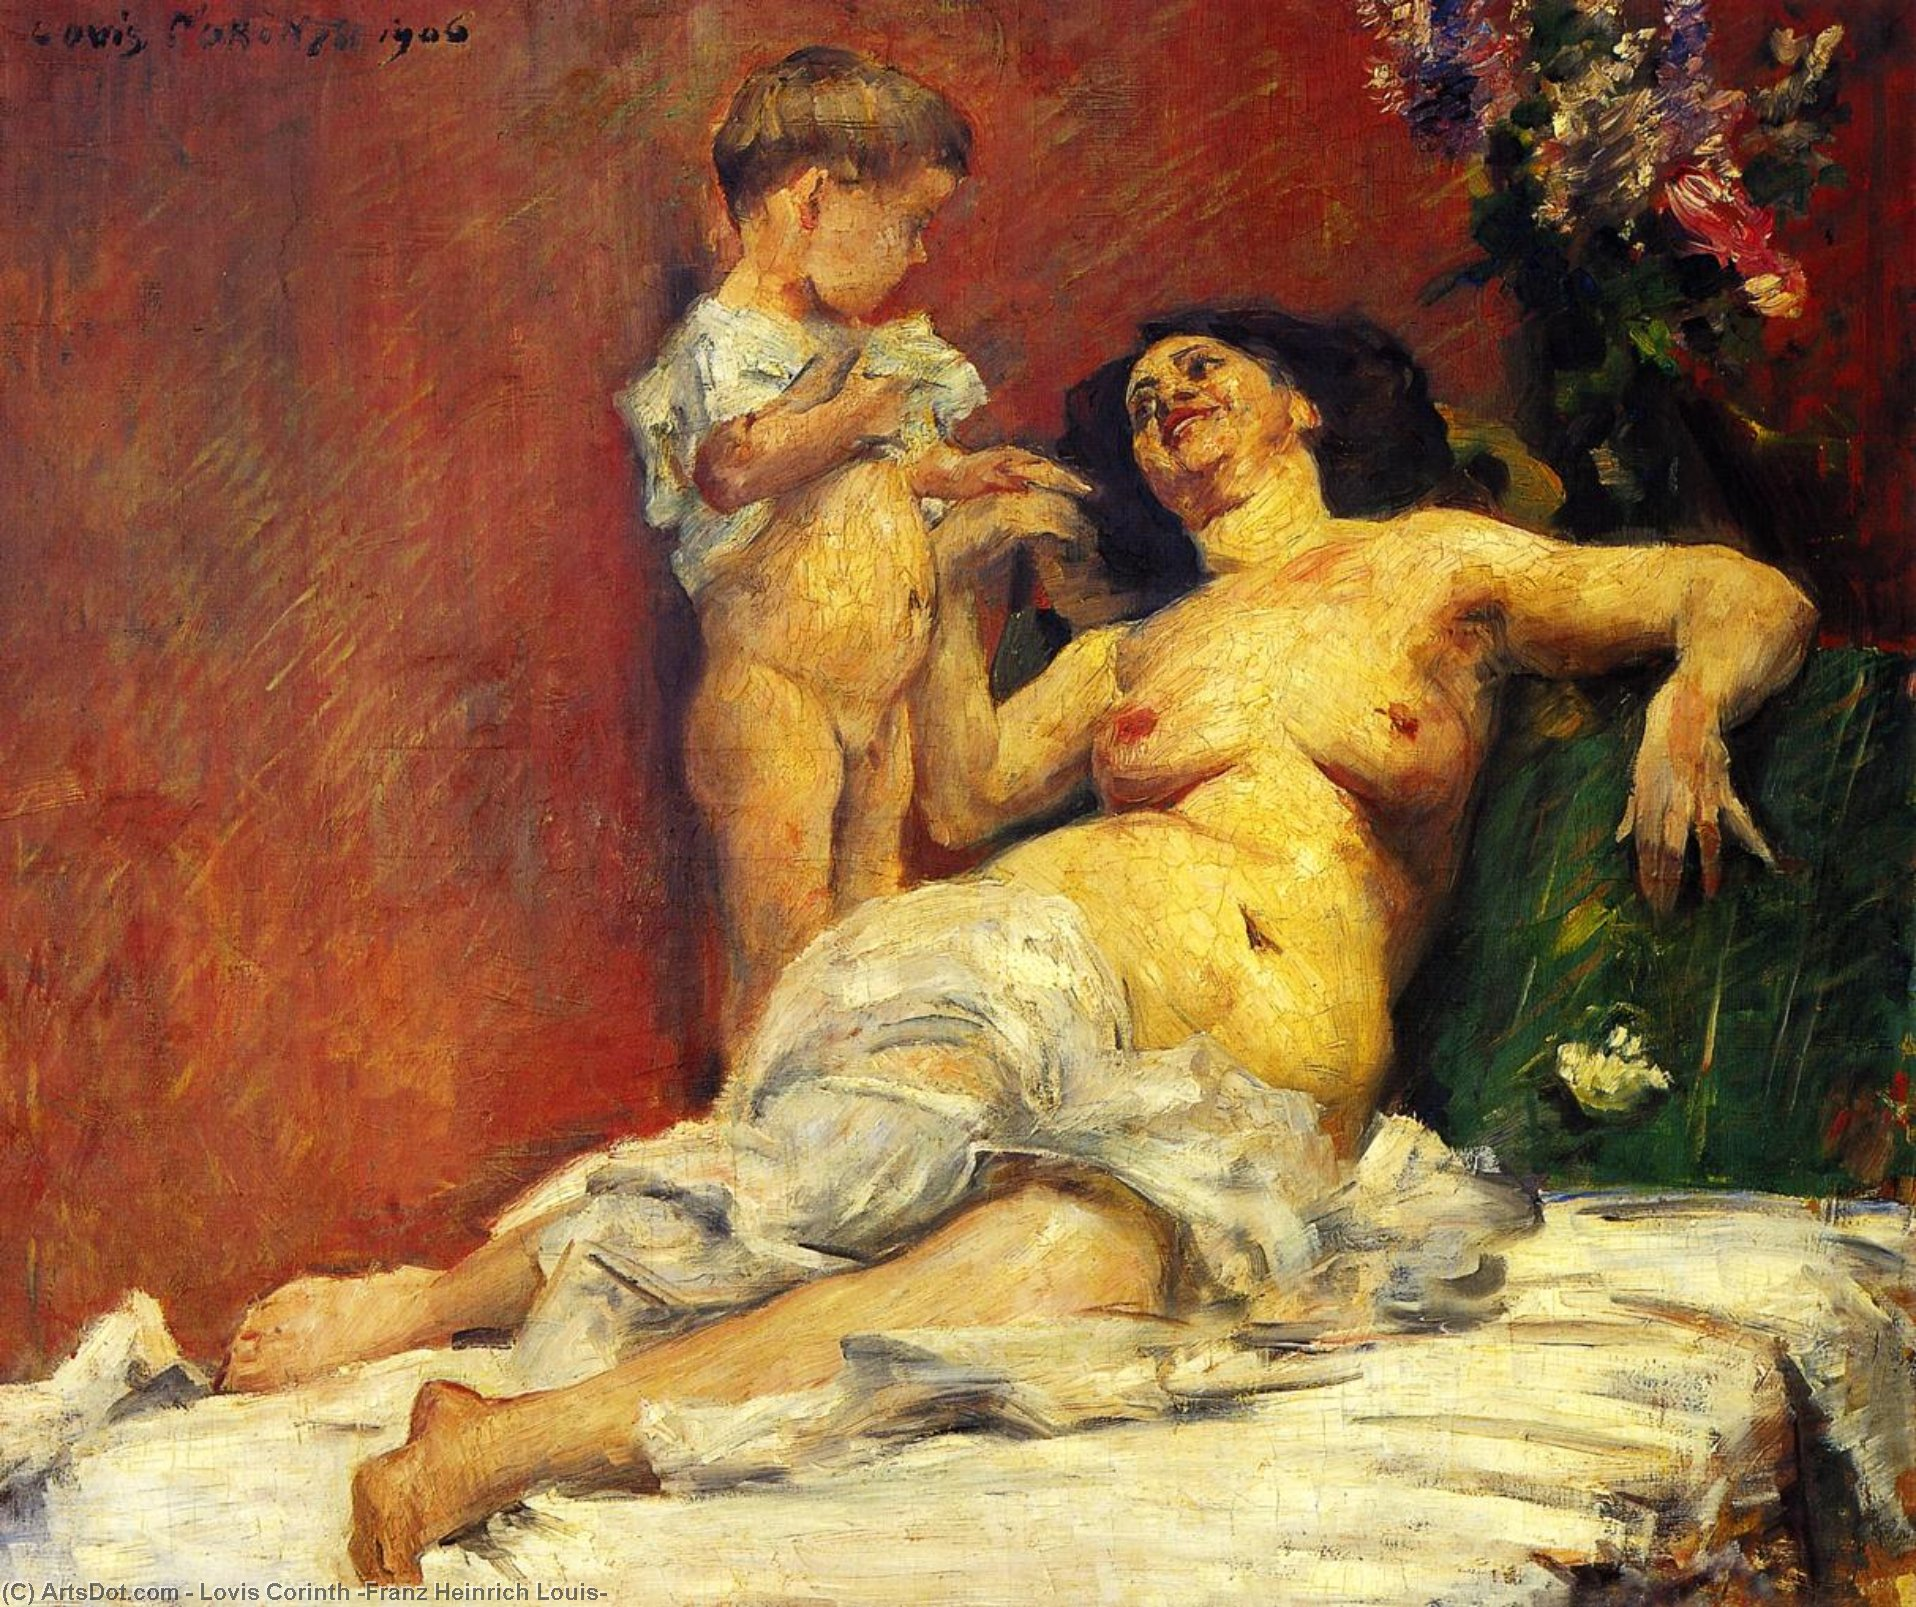 Mother and Child, Oil On Canvas by Lovis Corinth (Franz Heinrich Louis) (1858-1925, Netherlands)